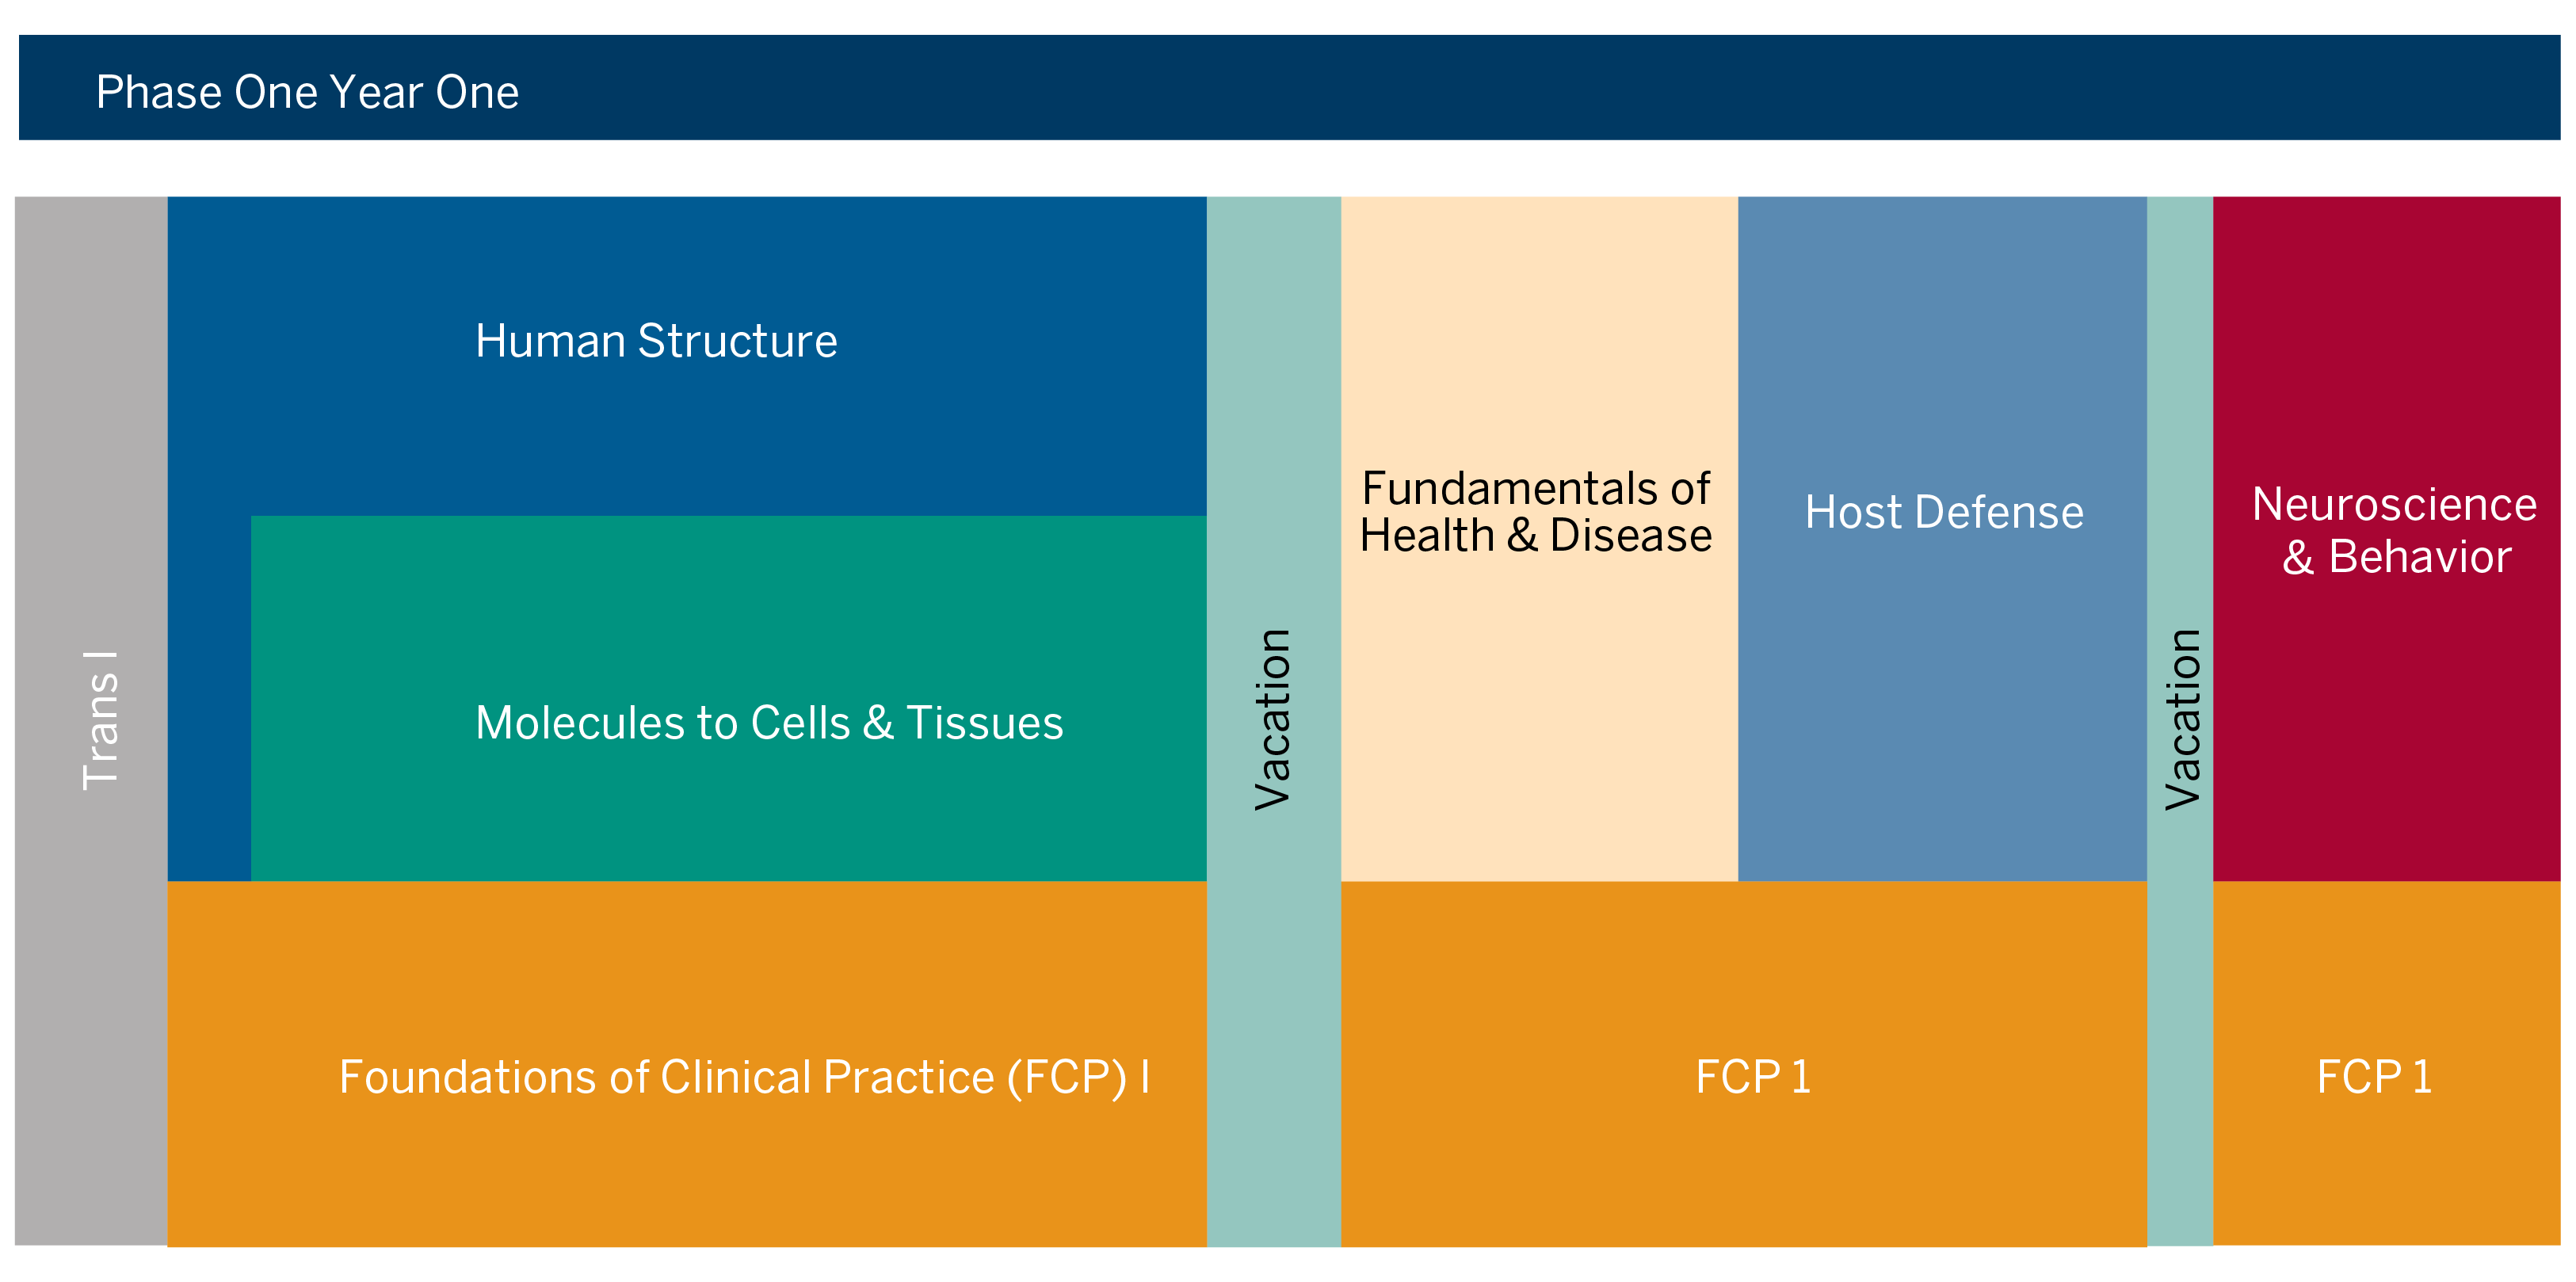 MD Curriculum Phase 1 - Year 1